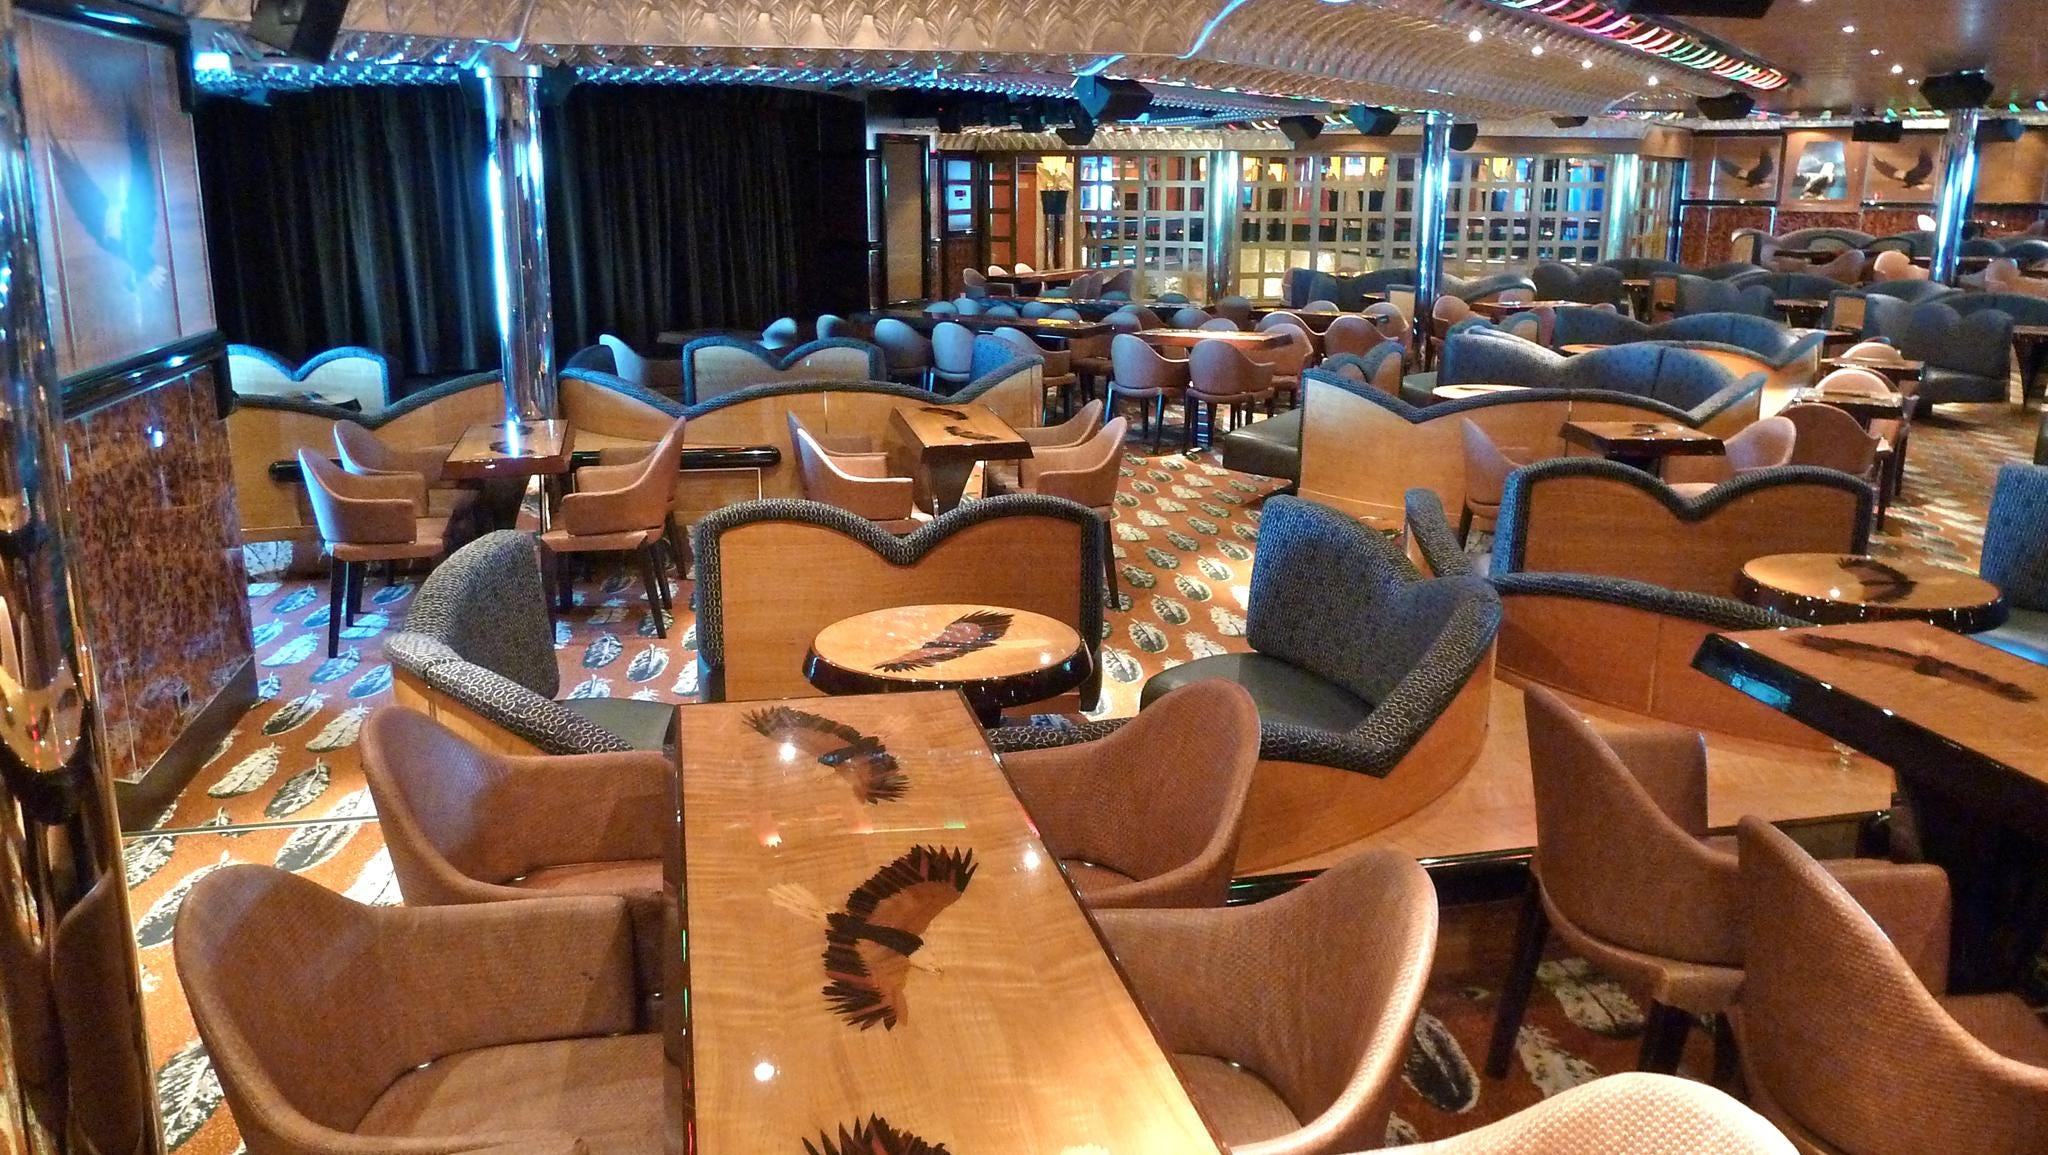 The aft show lounge and comedy club Eagles seats 425. Marquetry-topped tables feature eagles in flight and realistic looking eagles inhabit various vitrines throughout the room.